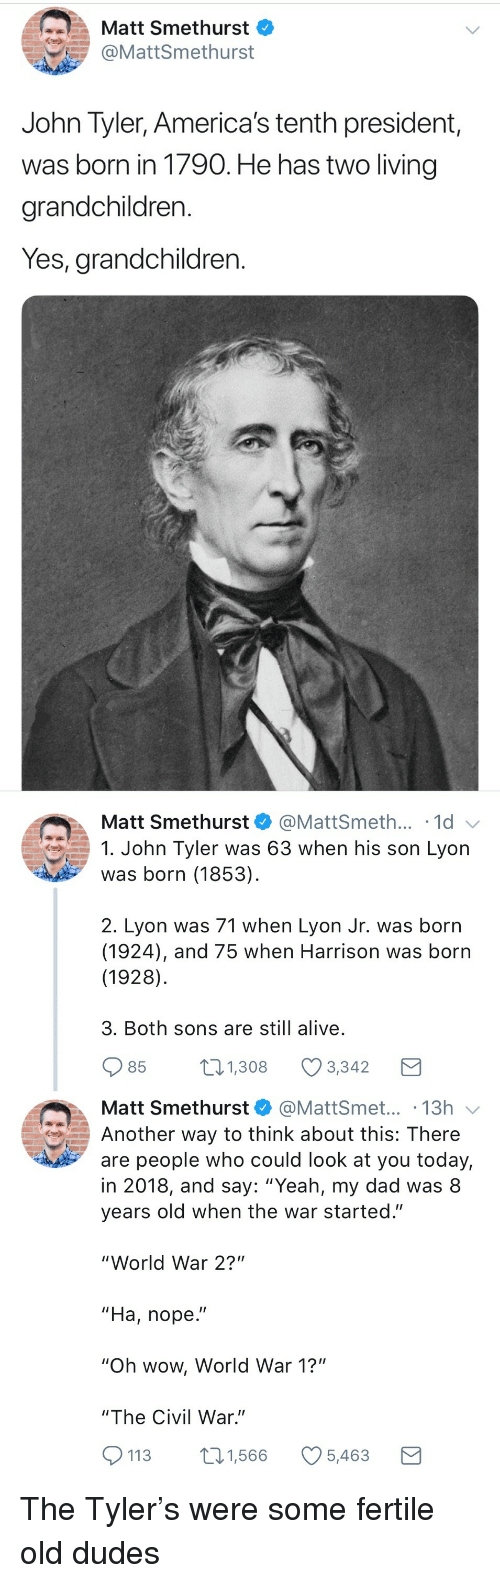 "Alive, Dad, and Wow: Matt Smethurst  @MattSmethurst  John Tyler, America's tenth president,  was born in 1790. He has two living  grandchildren.  Yes, grandchildren.   Matt Smethurst  @MattSmeth... 1d  1. John Tyler was 63 when his son Lyon  was born (1853)  2. Lyon was 71 when Lyon Jr. was born  (1924), and 75 when Harrison was born  (1928)  3. Both sons are still alive  85  1.308 Ø3342  Matt Smethurst@MattSmet... .13h  Another way to think about this: There  are people who could look at you today,  in 2018, and say: ""Yeah, my dad was 8  years old when the war started.""  ""World War 2?""  ""Ha, nope.""  ""Oh wow, World War 1?""  ""The Civil War.""  113 1,566 5,463 <p>The Tyler's were some fertile old dudes</p>"